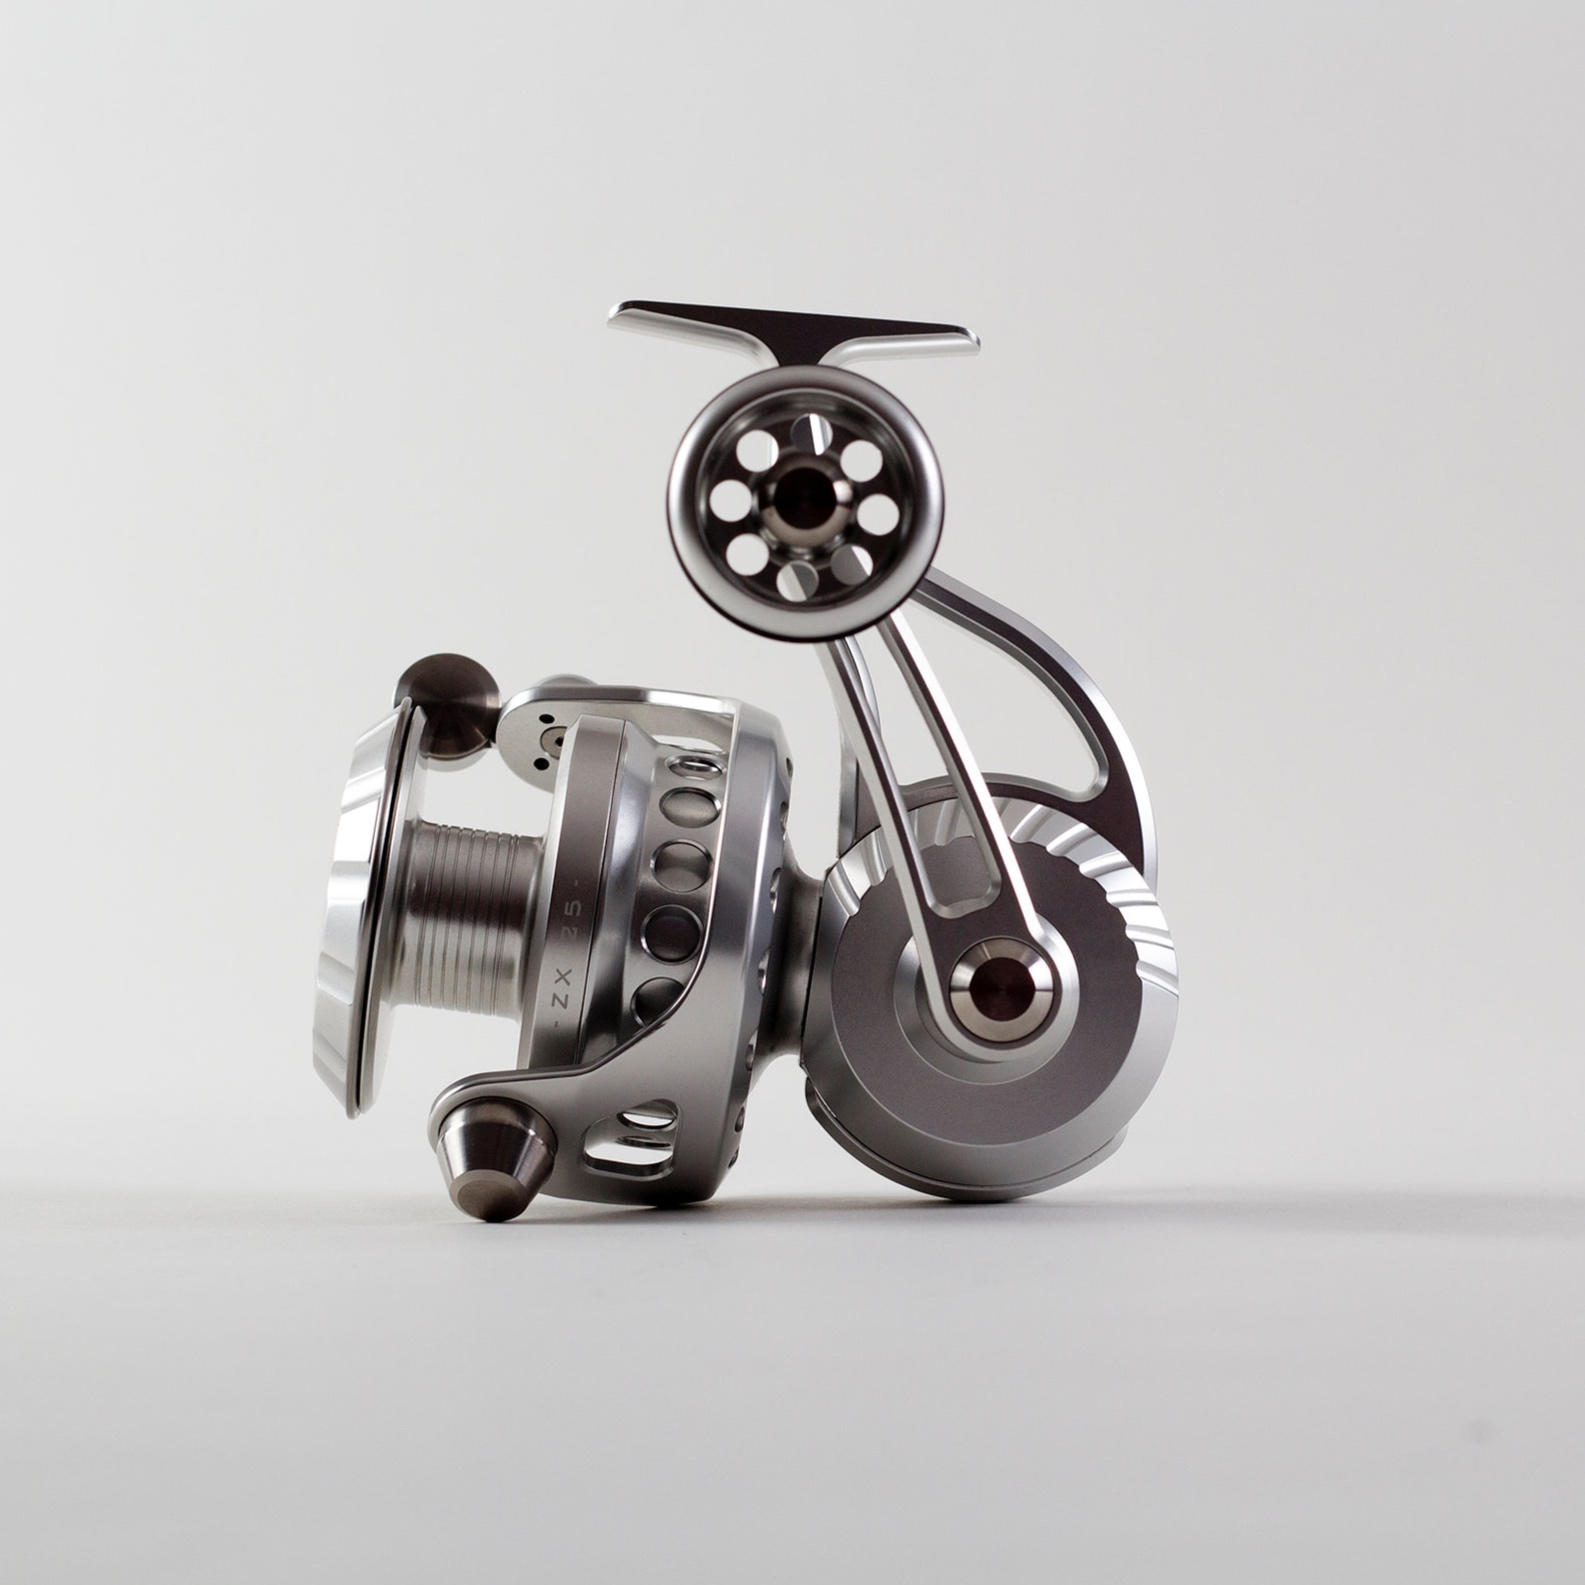 "ZeeBaaS ZX-25 - The ZX-25 is favored by most surfcasters using a 10.5'-12' rod. This model fishing reel provides plenty of line capacity for those throwing big plugs from shore, or dropping plenty of line off-shore and requiring the big, smooth drag performance. Like all of our reels, the ZX-25 is fully sealed and completely waterproof. We offer the ZX-25 in black, silver or a combination of black and silver which we refer to as our tuxedo edition. Custom colors and personal engraving are also available for an additional charges. Contact us for details.Our ZX-25 DeliversSpool Diameter: 2.5""Weight: 21.6 ozGear Ratio: 4.75:1Capacity: Mono: 400/15 - Braid: 450/30Retrieve: 35.5"" per turnMax Drag: 35lbsAble to be self-maintained or factory maintained.Starting at $979.00"